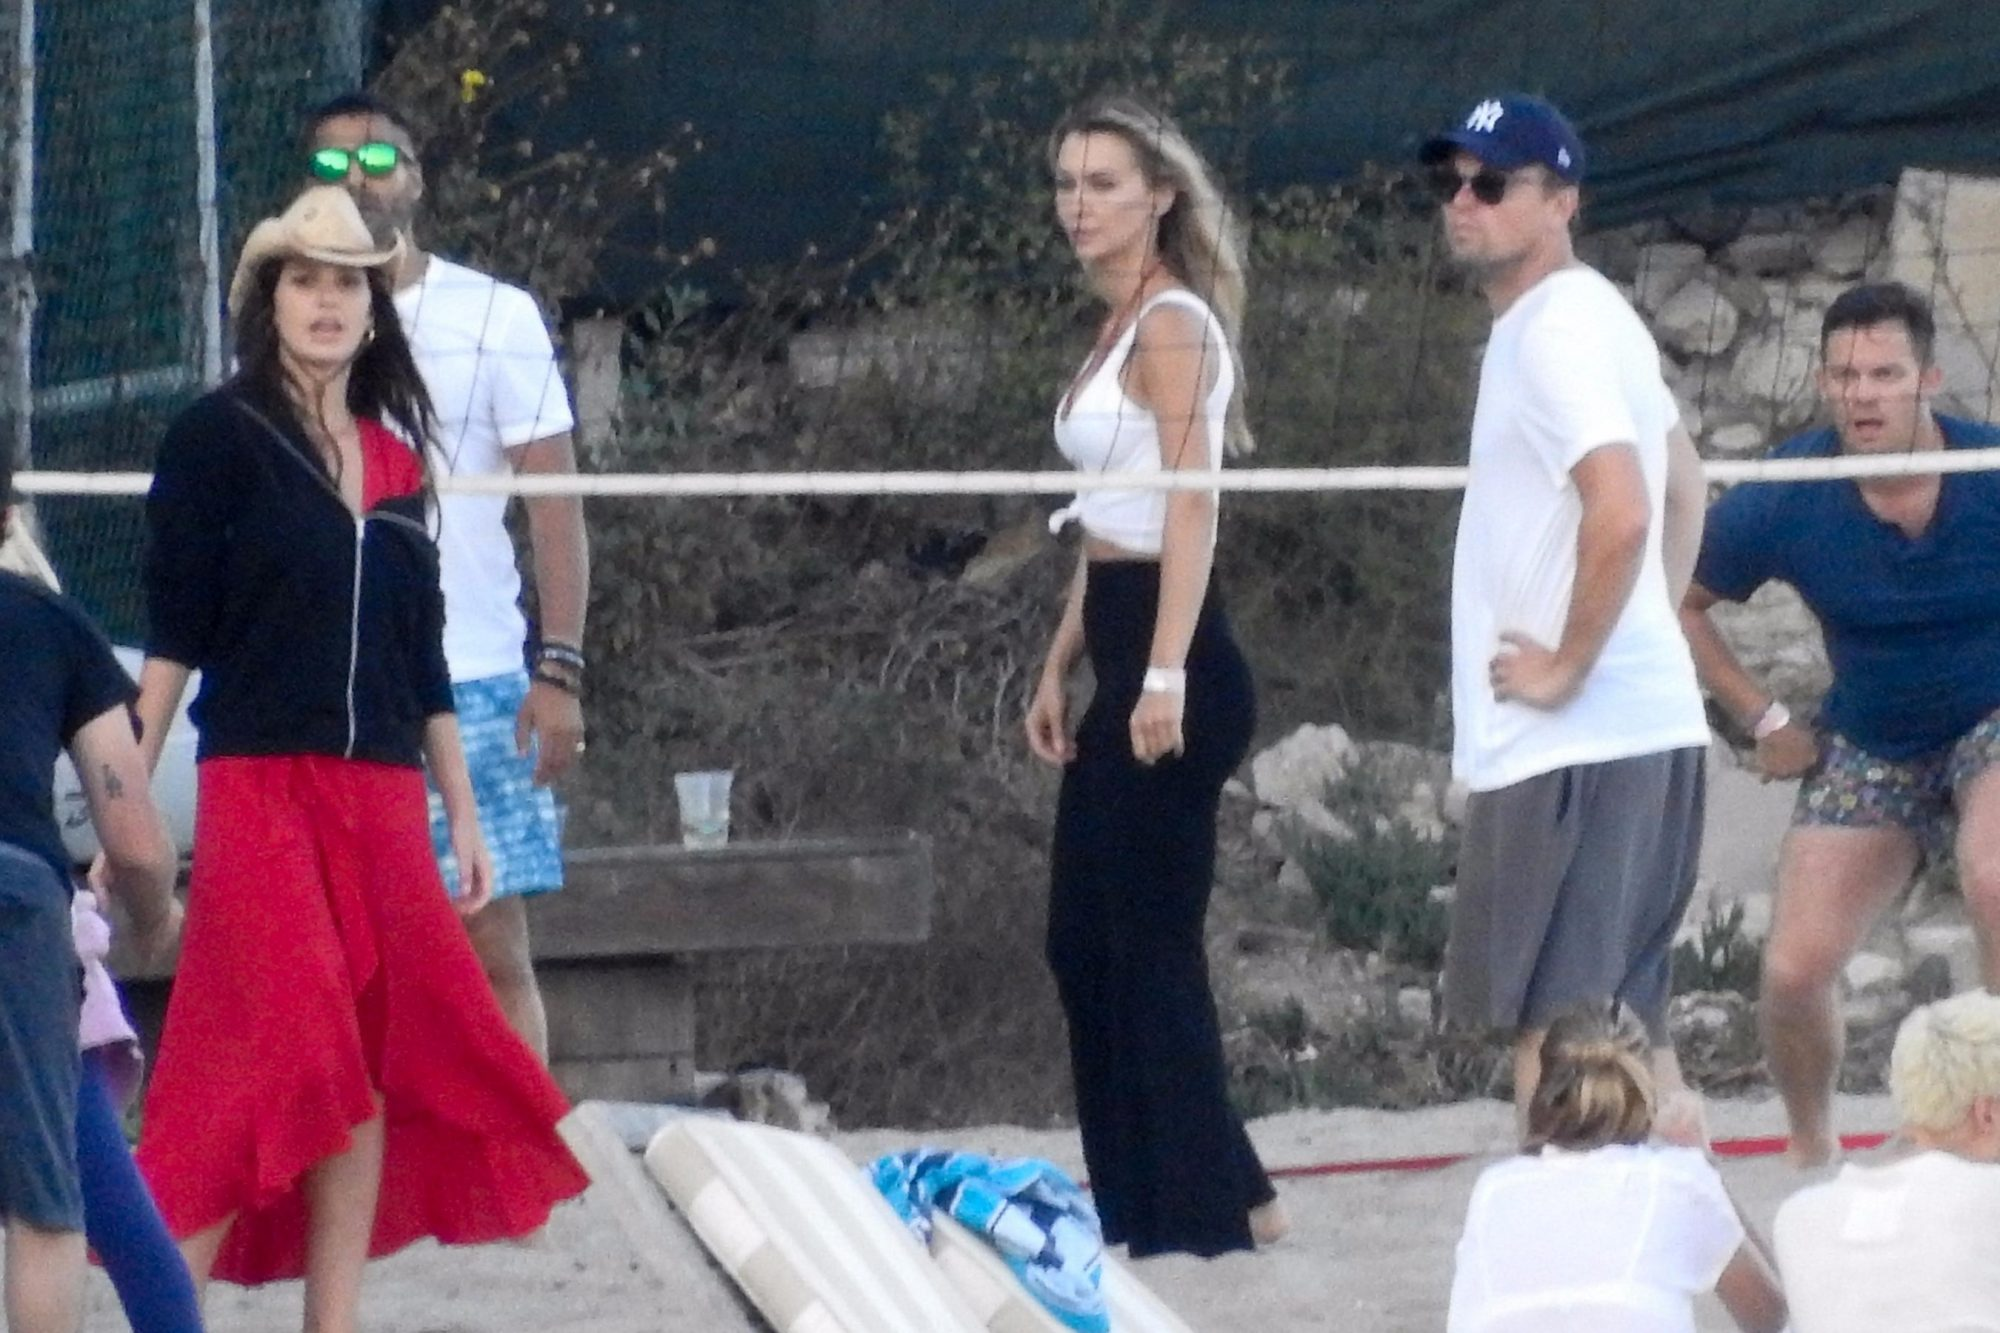 *EXCLUSIVE* Leonardo DiCaprio hangs out with Sean Penn and plays beach volleyball with sexy girls on a 4th of July party! **WEB MUST CALL FOR PRICING**